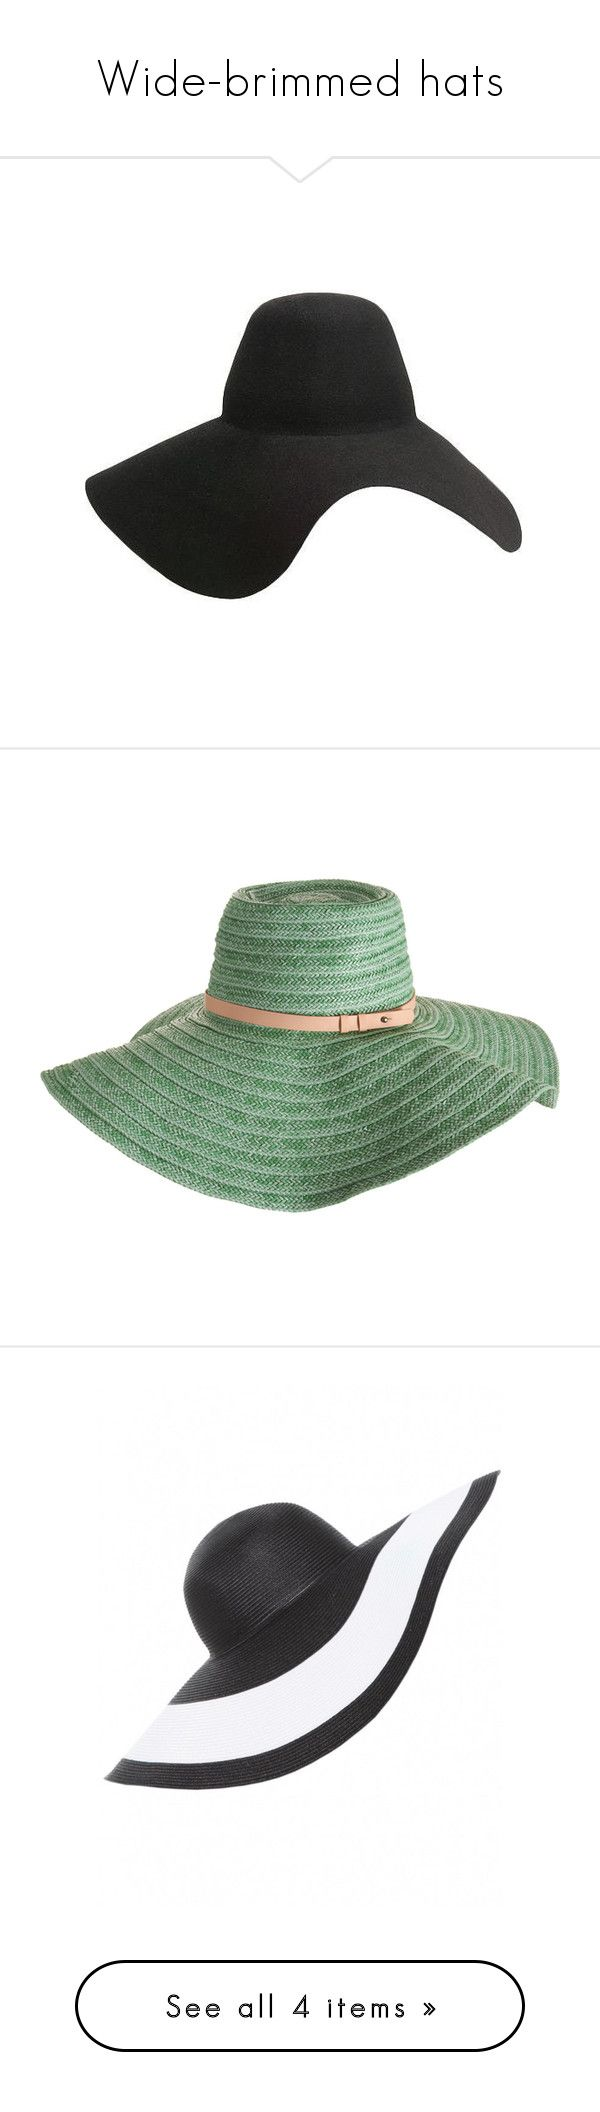 """""""Wide-brimmed hats"""" by intelligence ❤ liked on Polyvore featuring accessories, hats, black, headwear, lanvin, floppy brim hat, wide hat, wide brim floppy hat, wide brim hat and cappelli"""